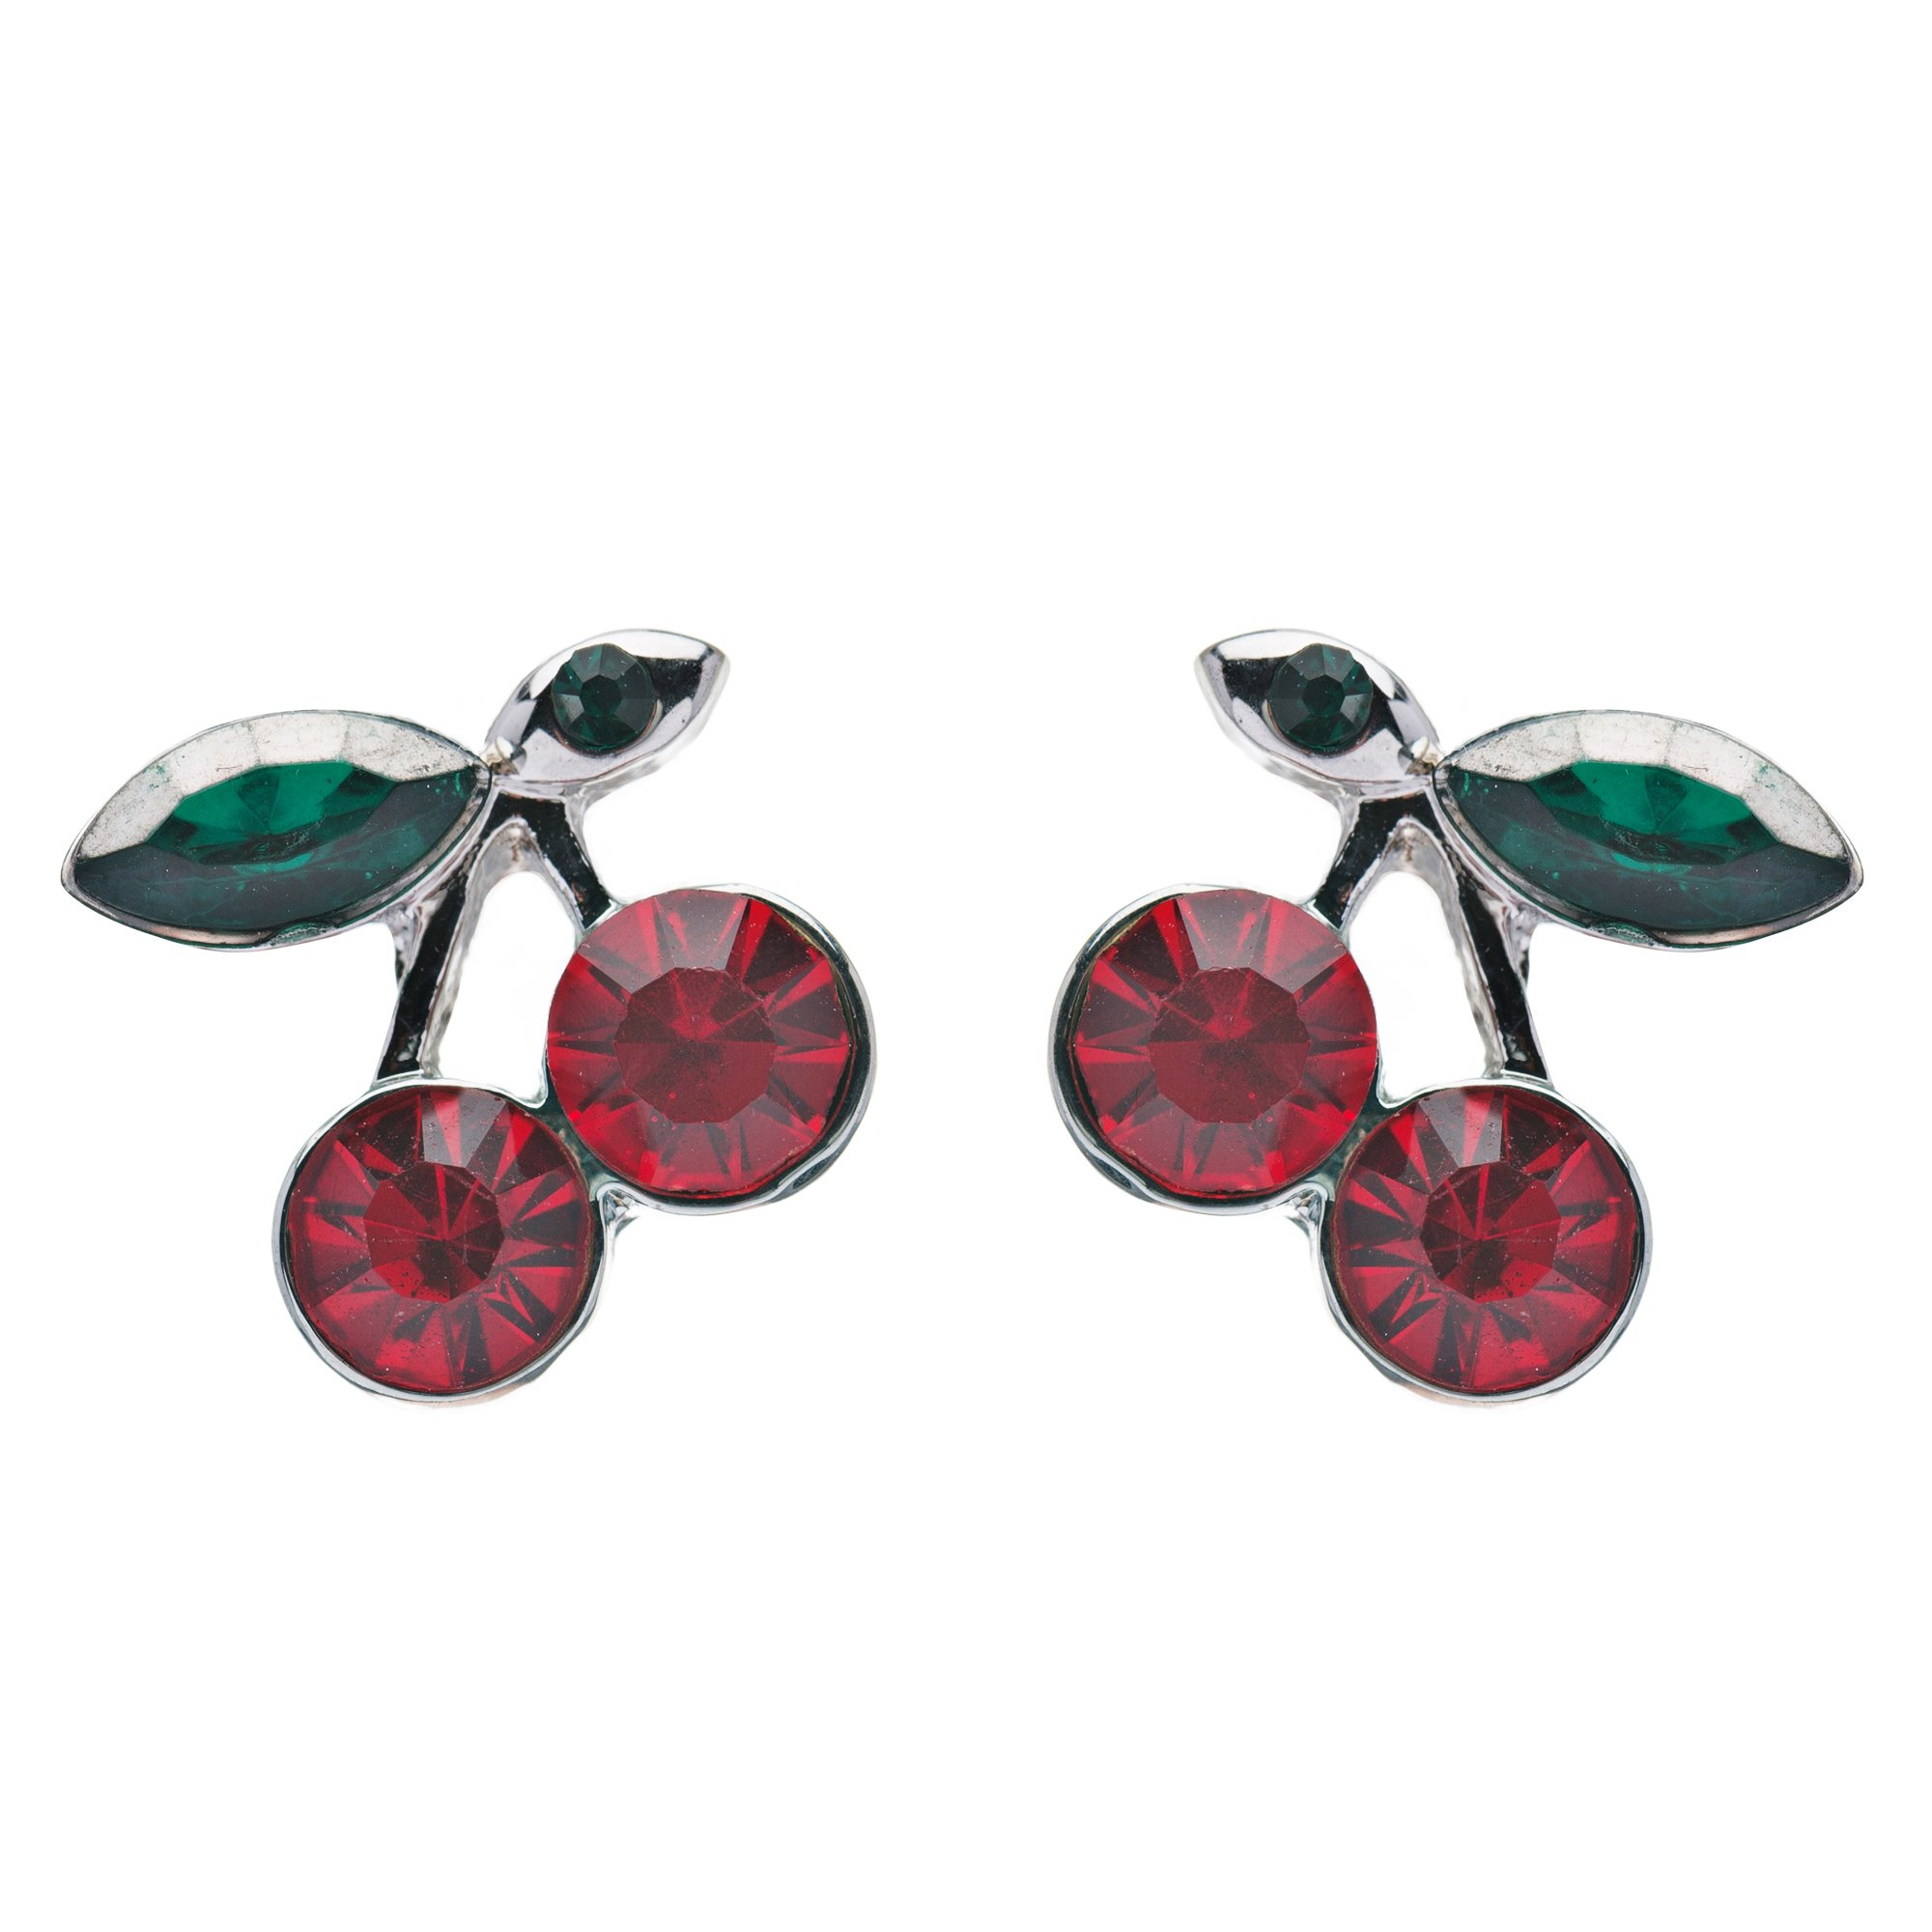 ACCESSORIESFOREVER Adorable Cute Cherry Fruit Charm Stud Style Rhinestone Fashion Earrings E490